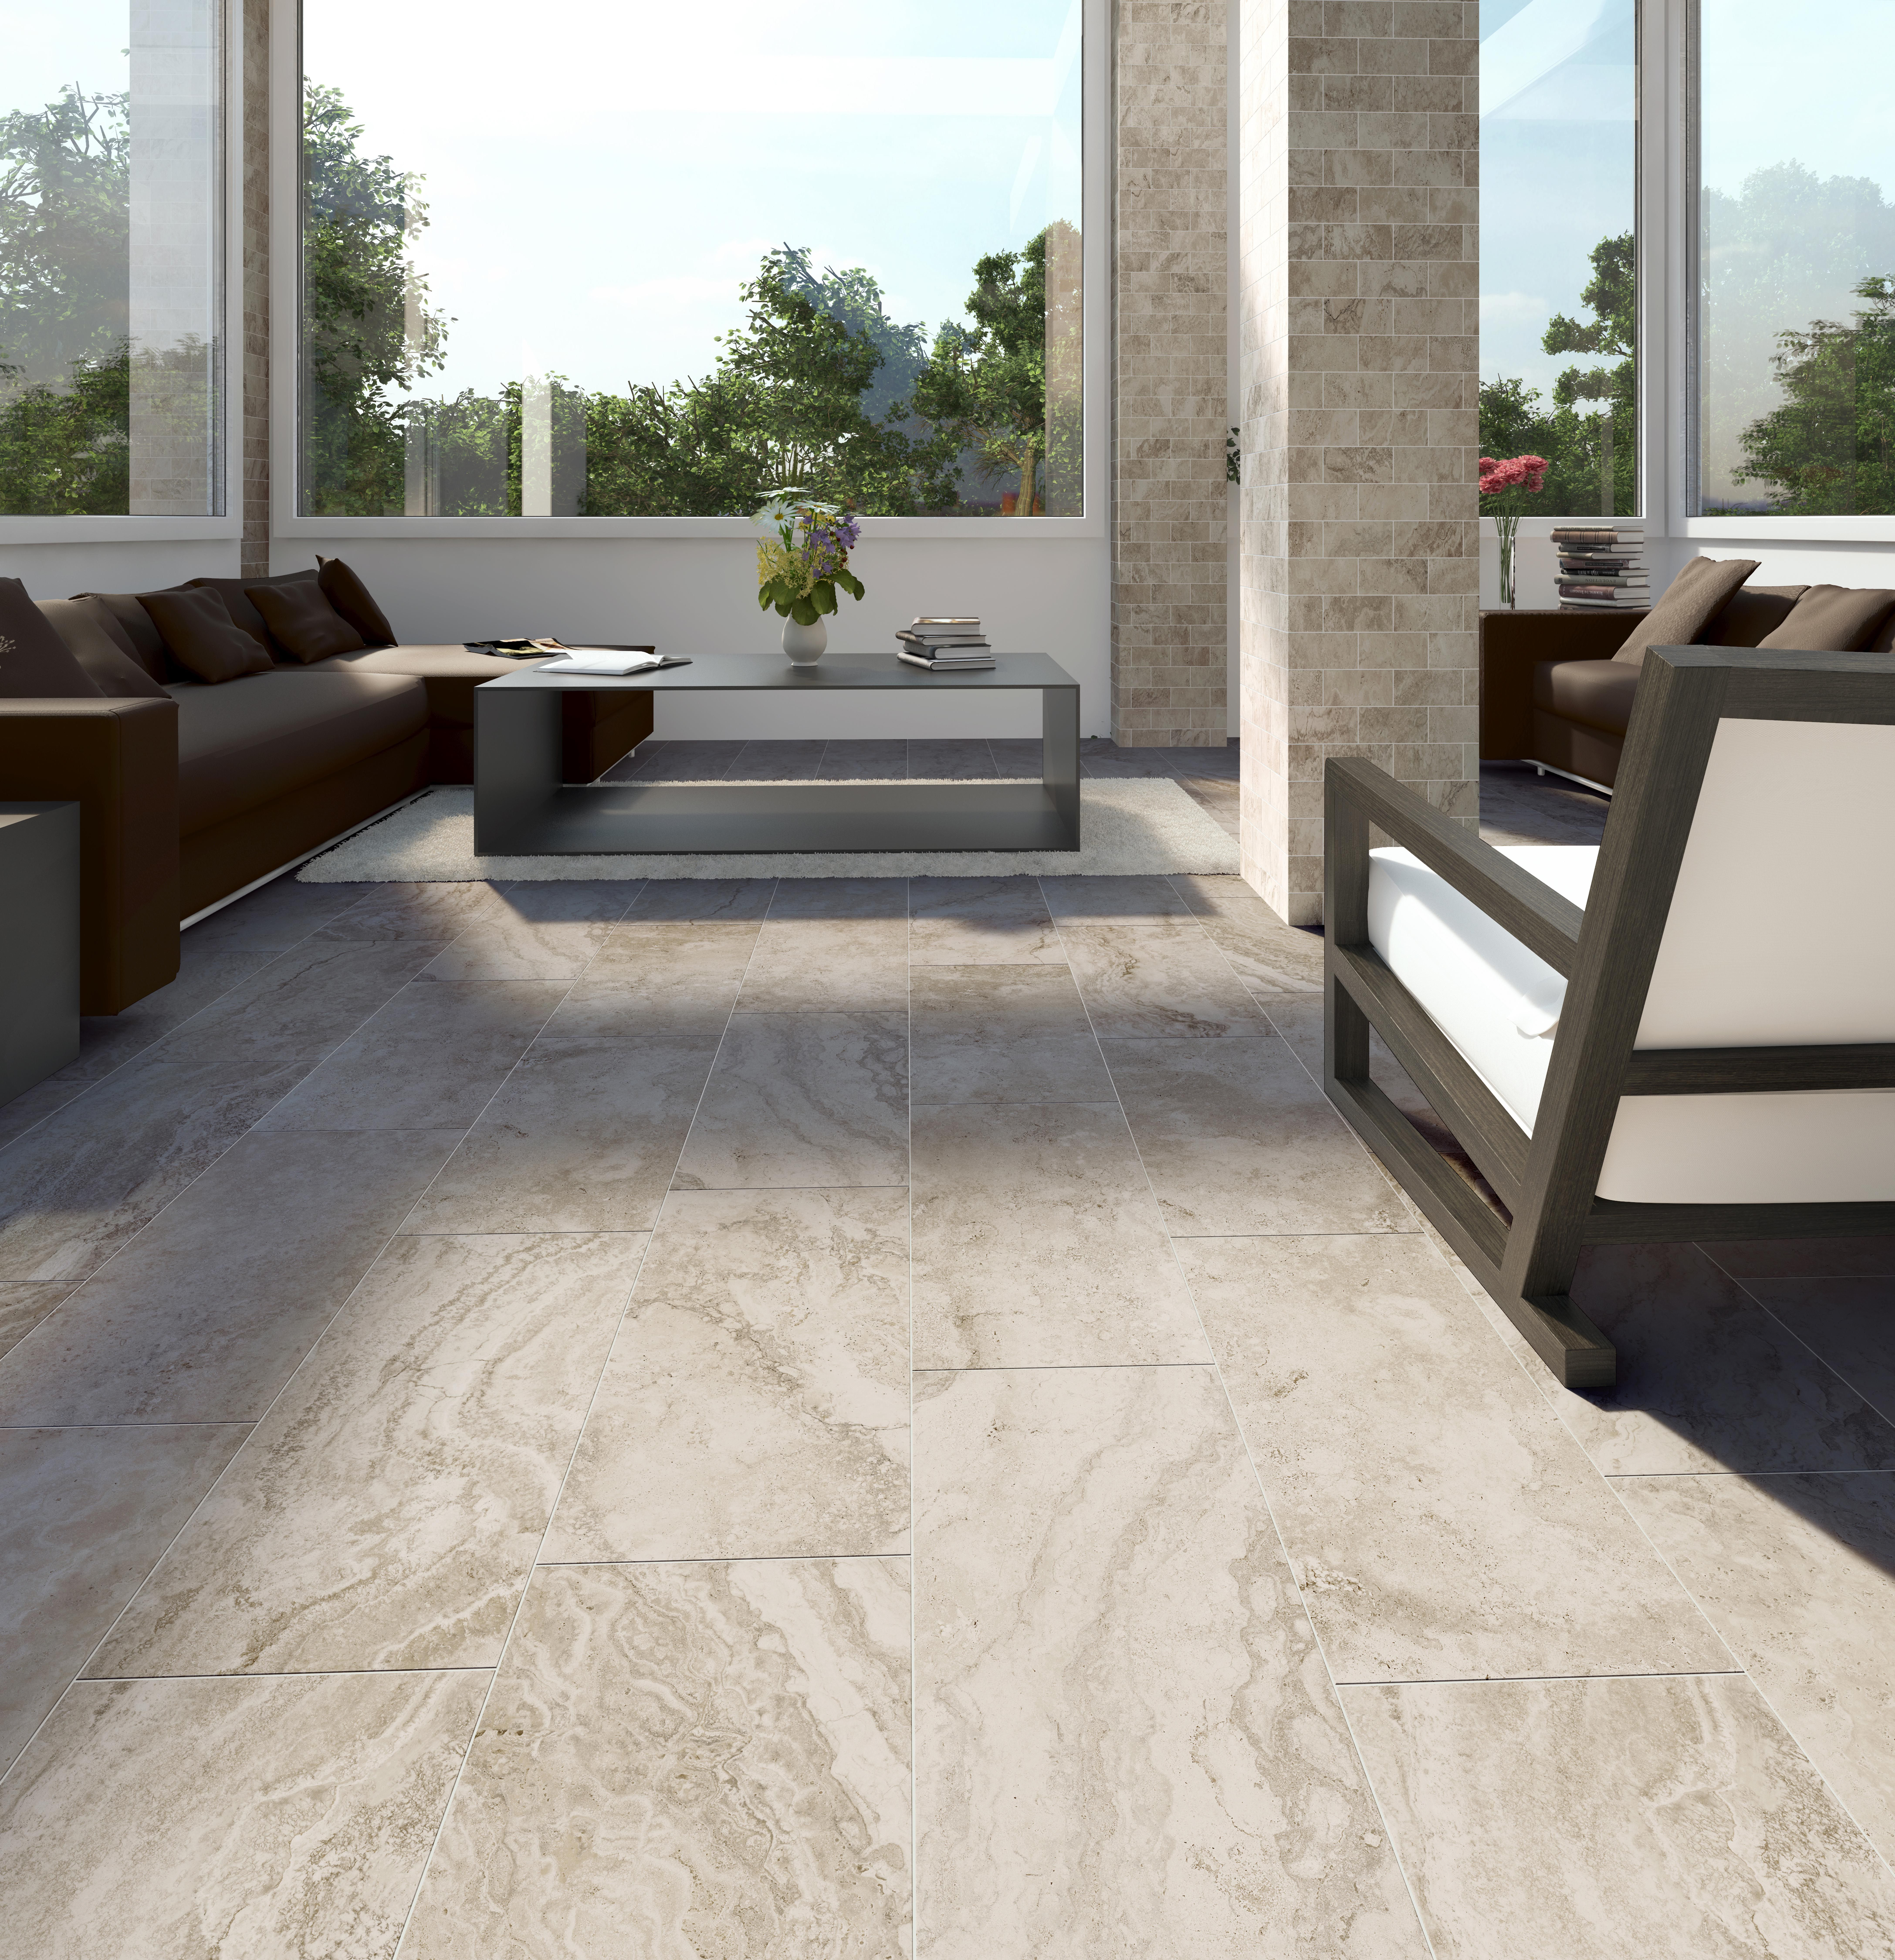 fresh of tile in best tiles cleaner india other floors floor nonsensical full commercial designs size porcelain kitchen and